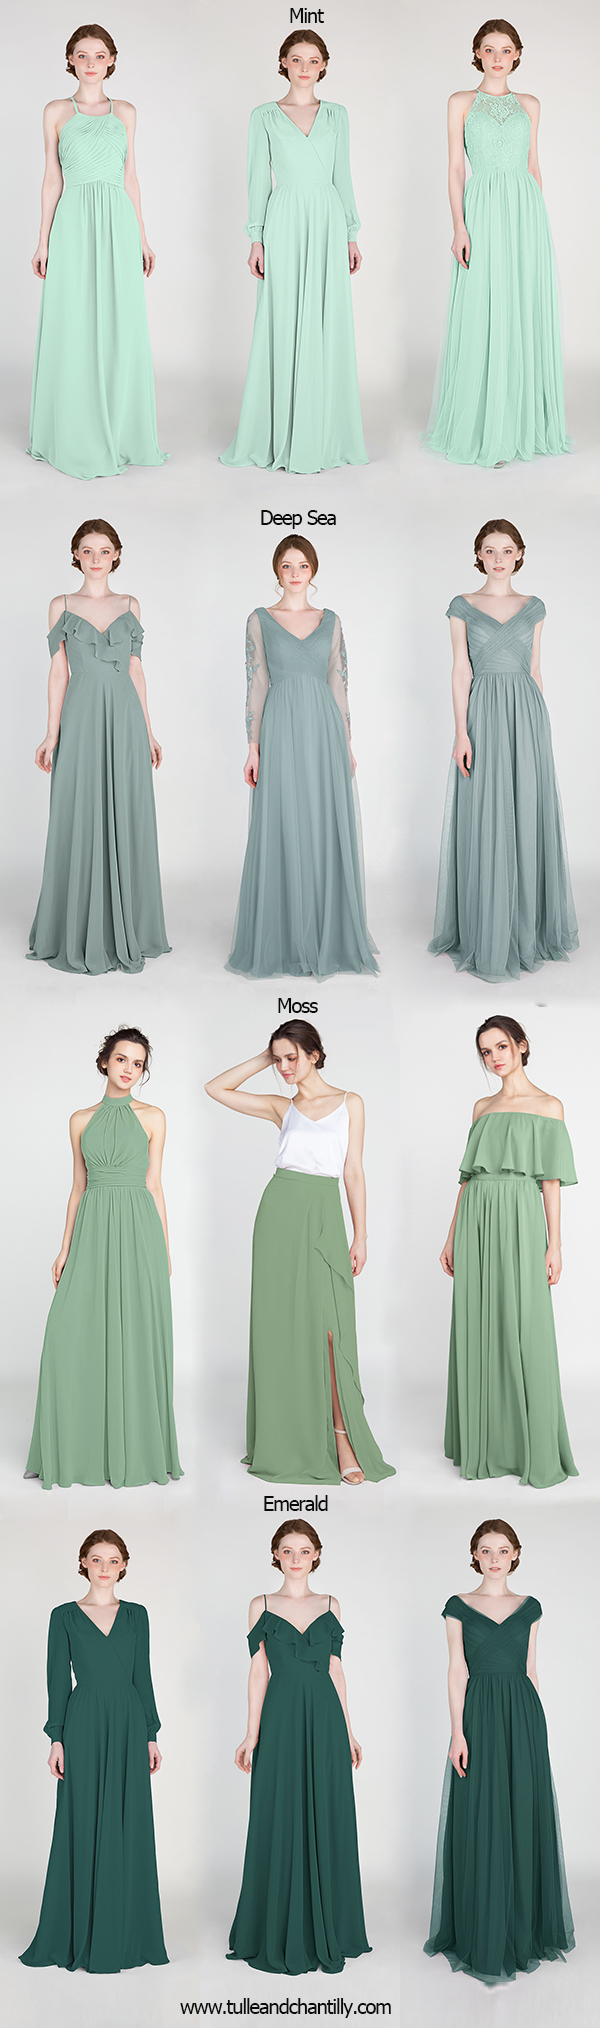 mint deep sea moss and emerald green bridesmaid dresses for greenery weddings